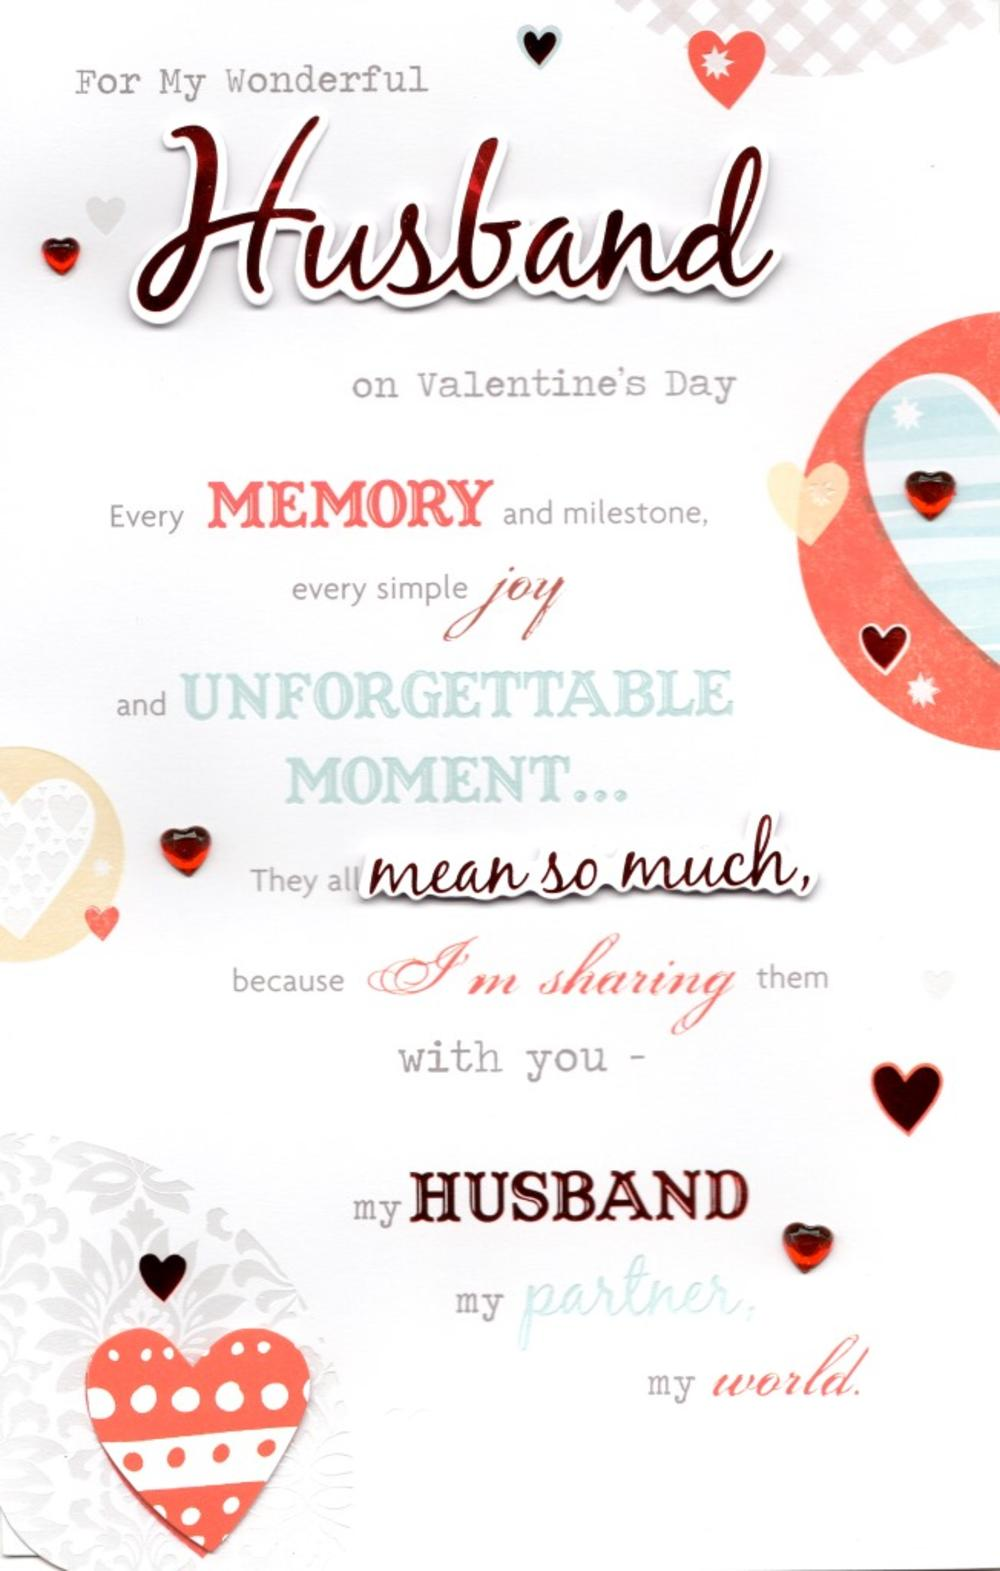 Husband Valentines Day Greeting Card Cards Love Kates